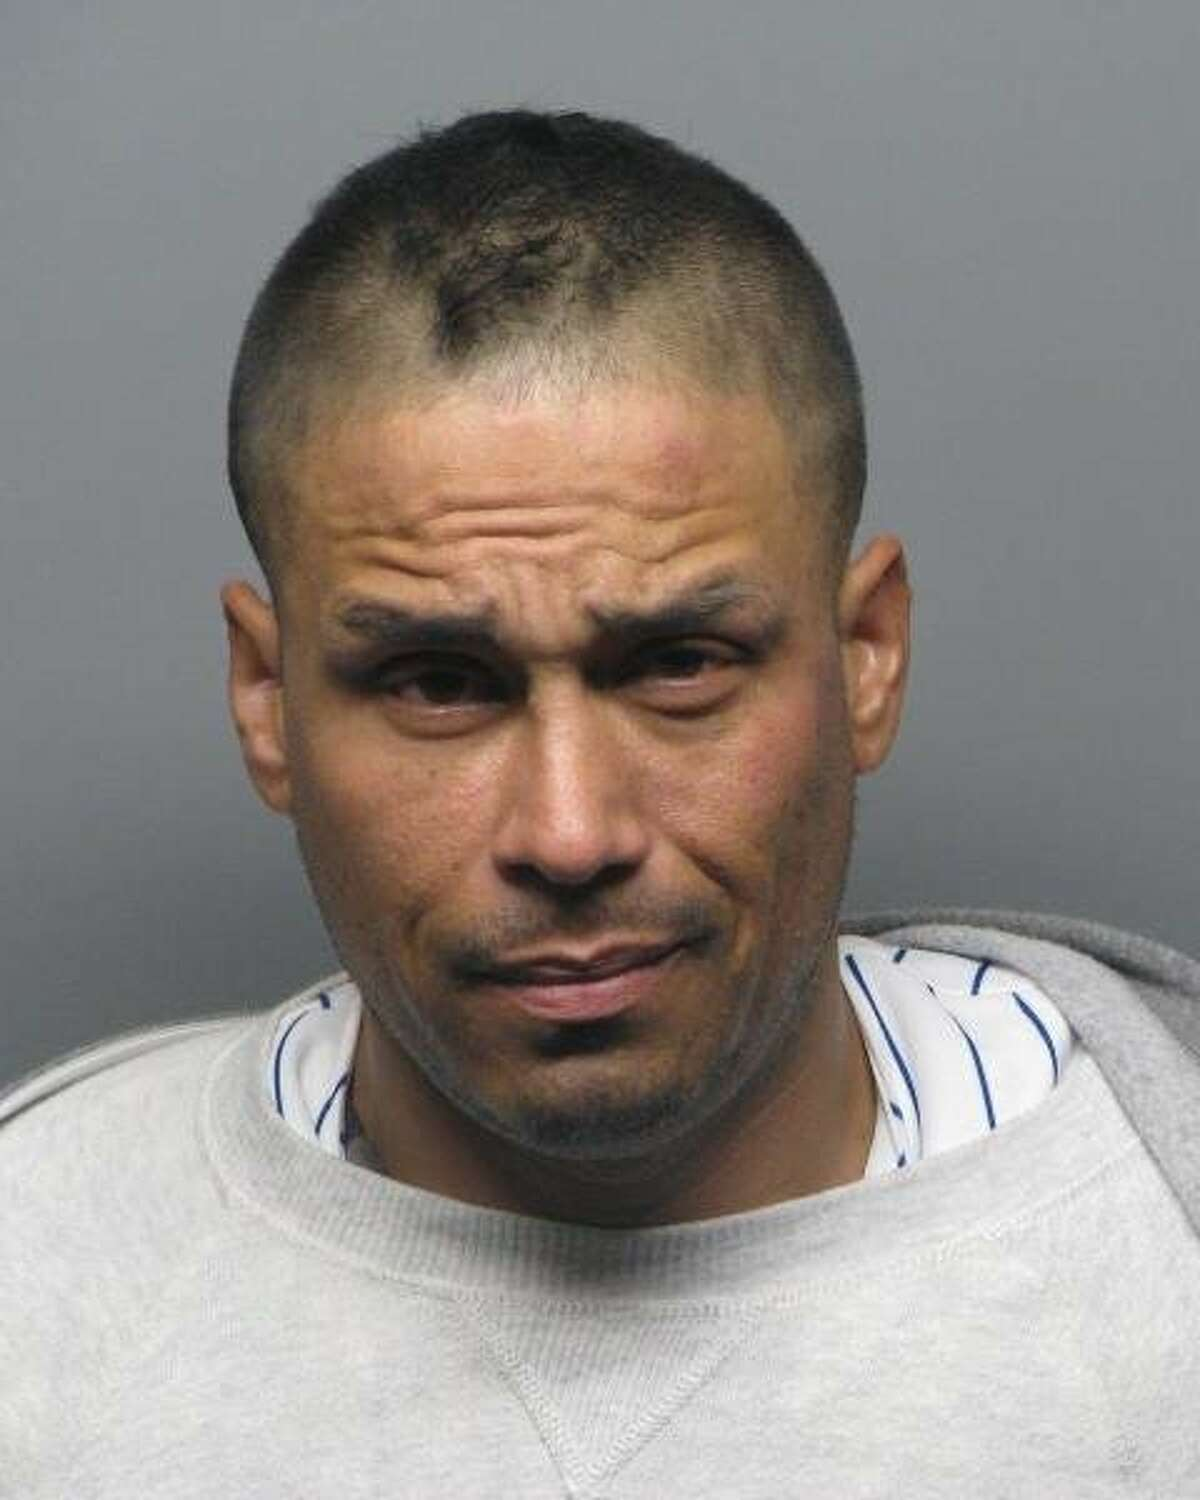 Police officers with BART, Clayton and Concord Police Departments arrested RobertoMarenco,38, while he was at a residence in Concord at 8:45p.m. Friday, according to BART officials. Marenco is shown in a undated mugshot unrelated to his arrest in this case.